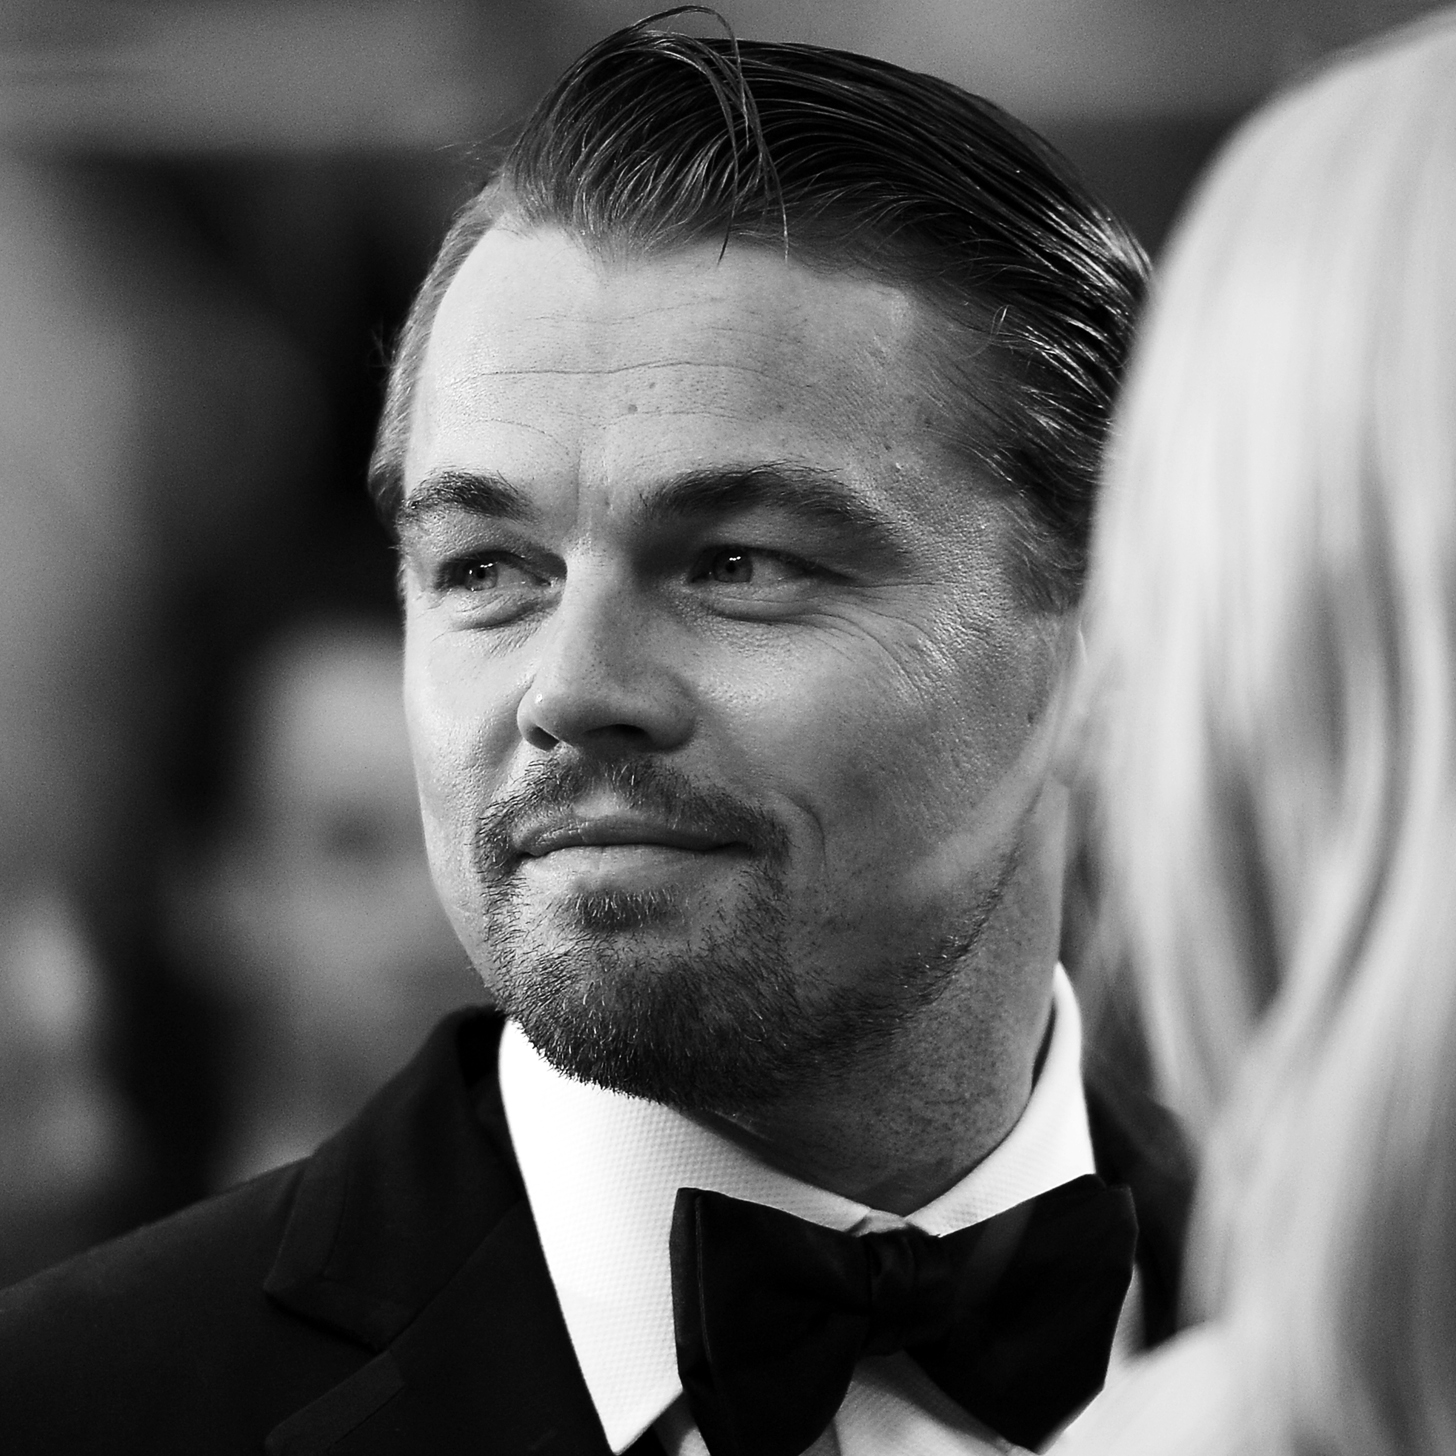 Leonardo DiCaprio just turned 40 years old, but he still makes ladies ...